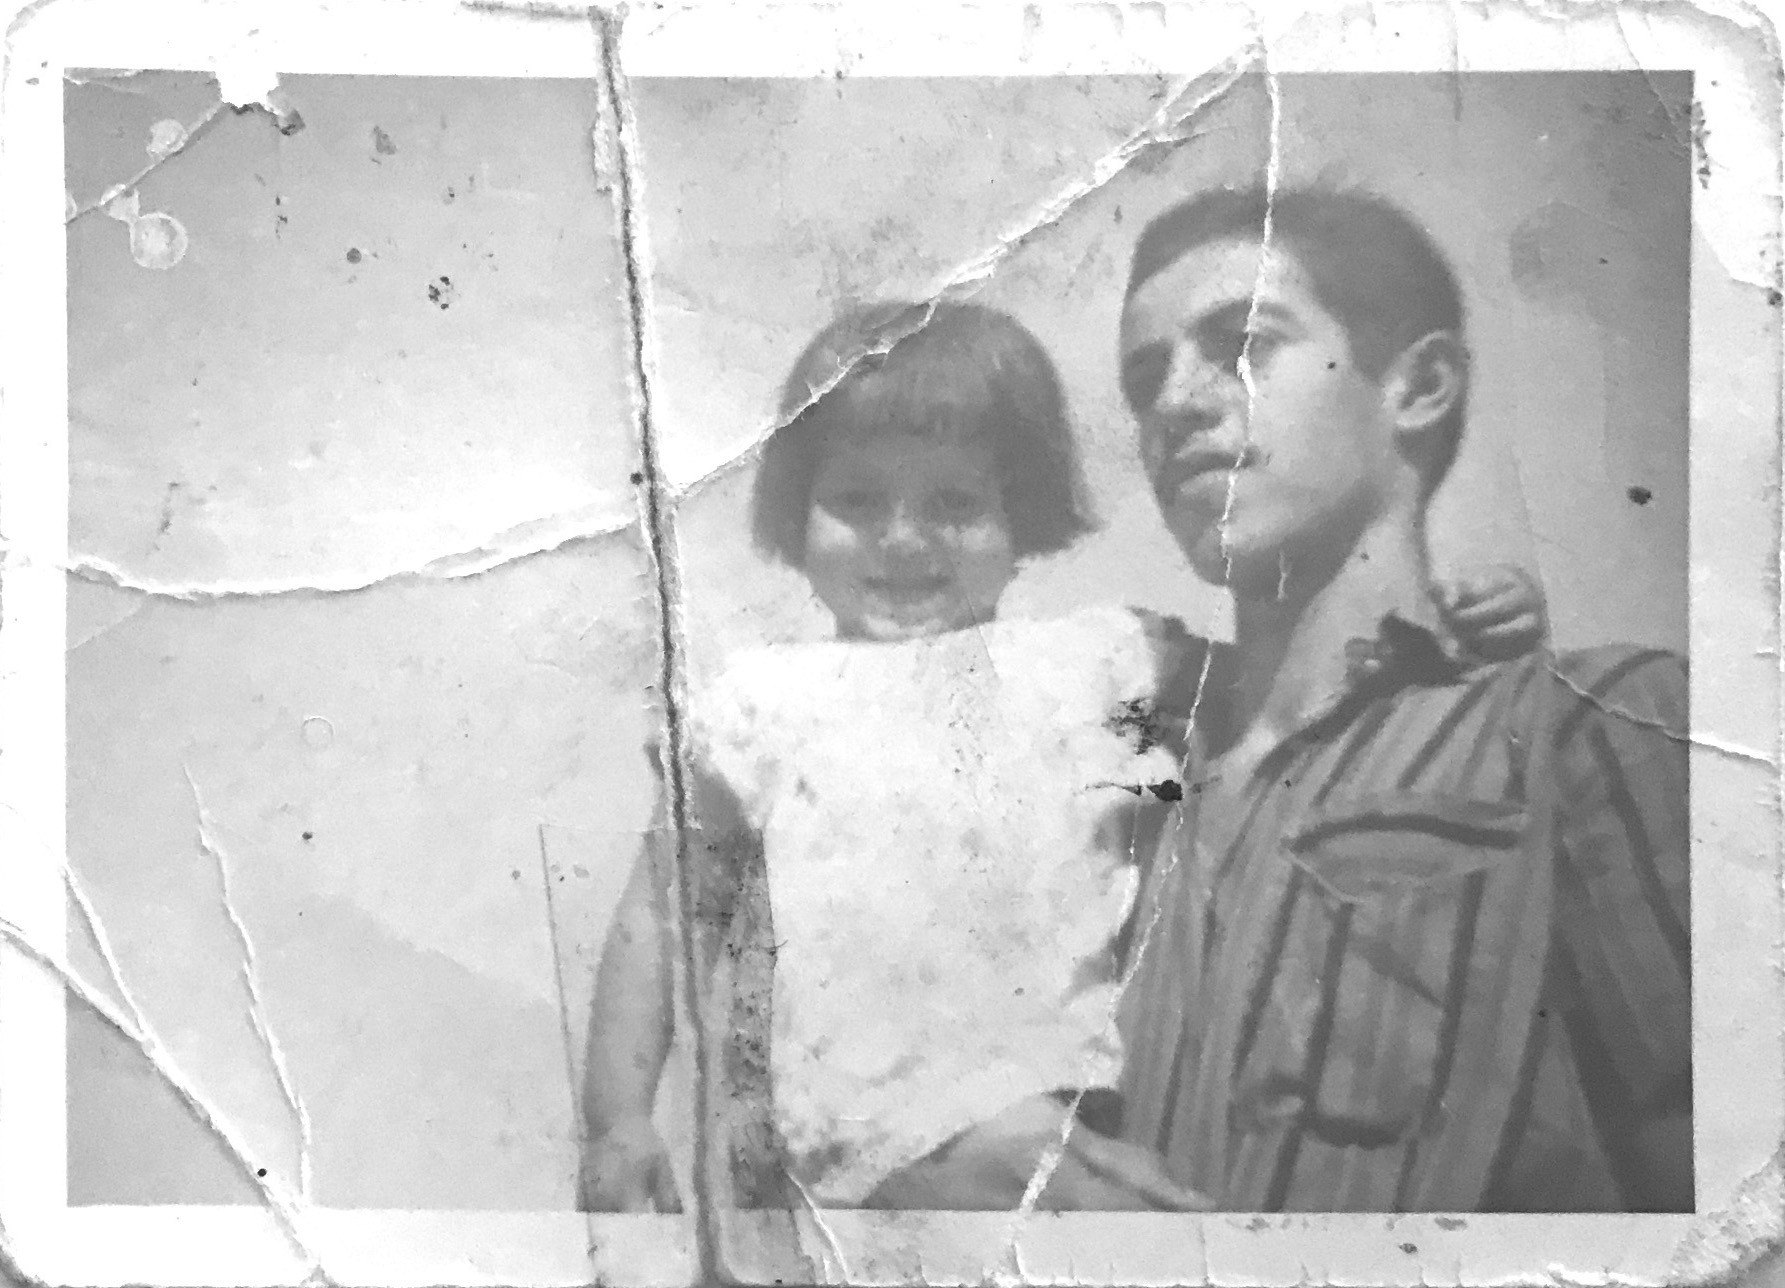 An image of a child being held by a man in 1969 as submitted to the Iraq Photo Archive.